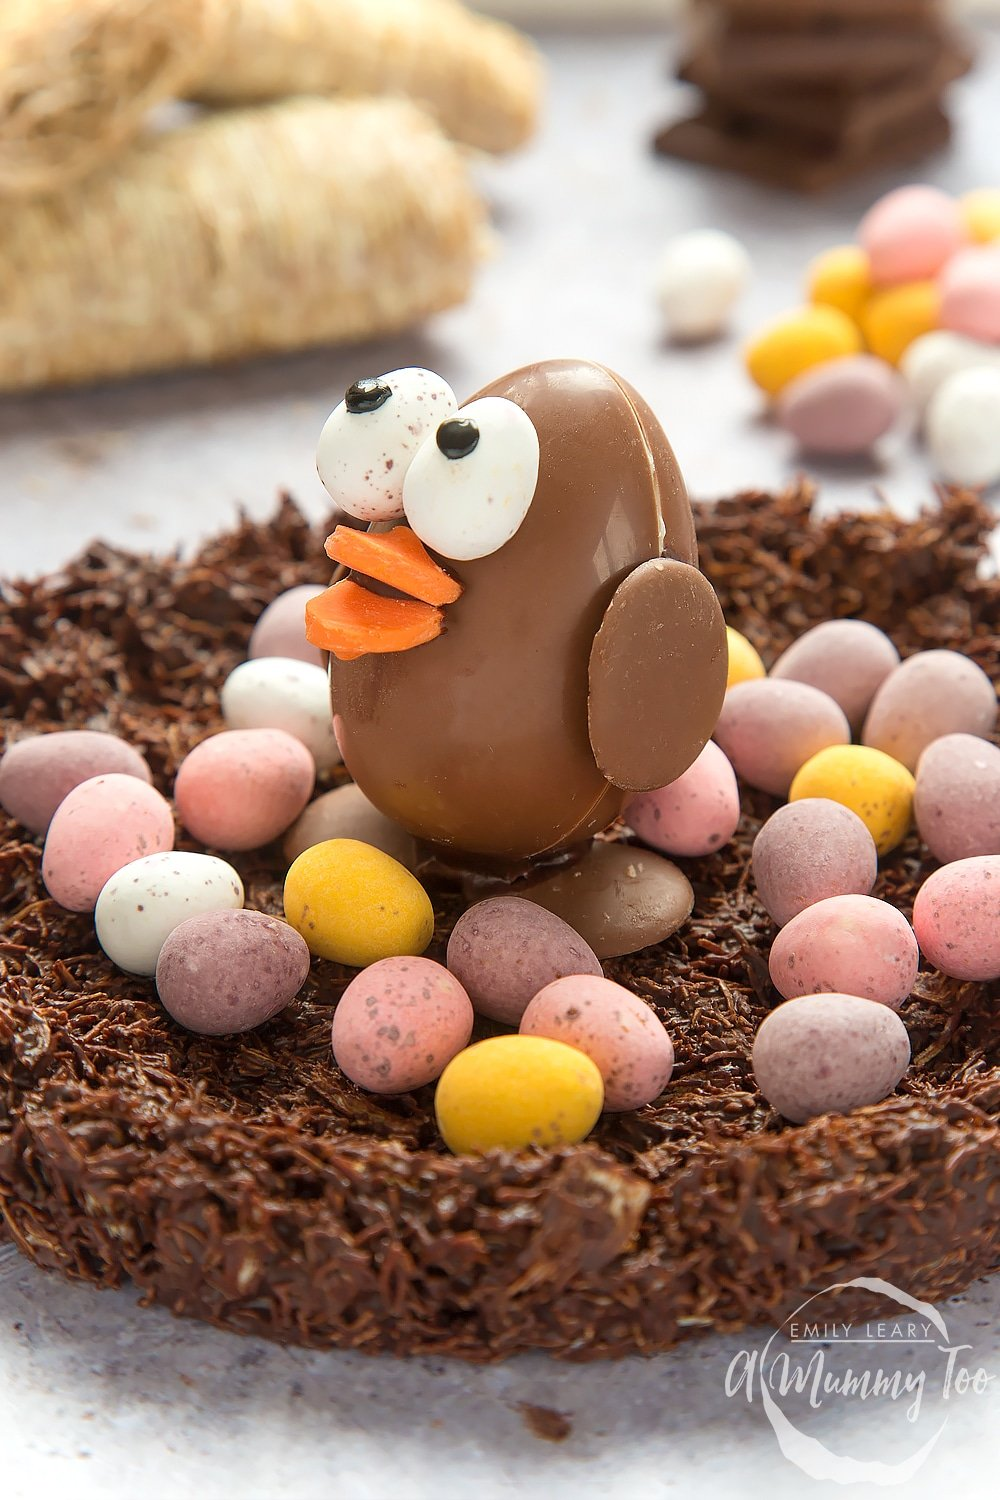 This adorable Easter egg chocolate chick is surrounded by mini eggs on a shredded wheat base. A fun Easter craft for the whole family to enjoy.